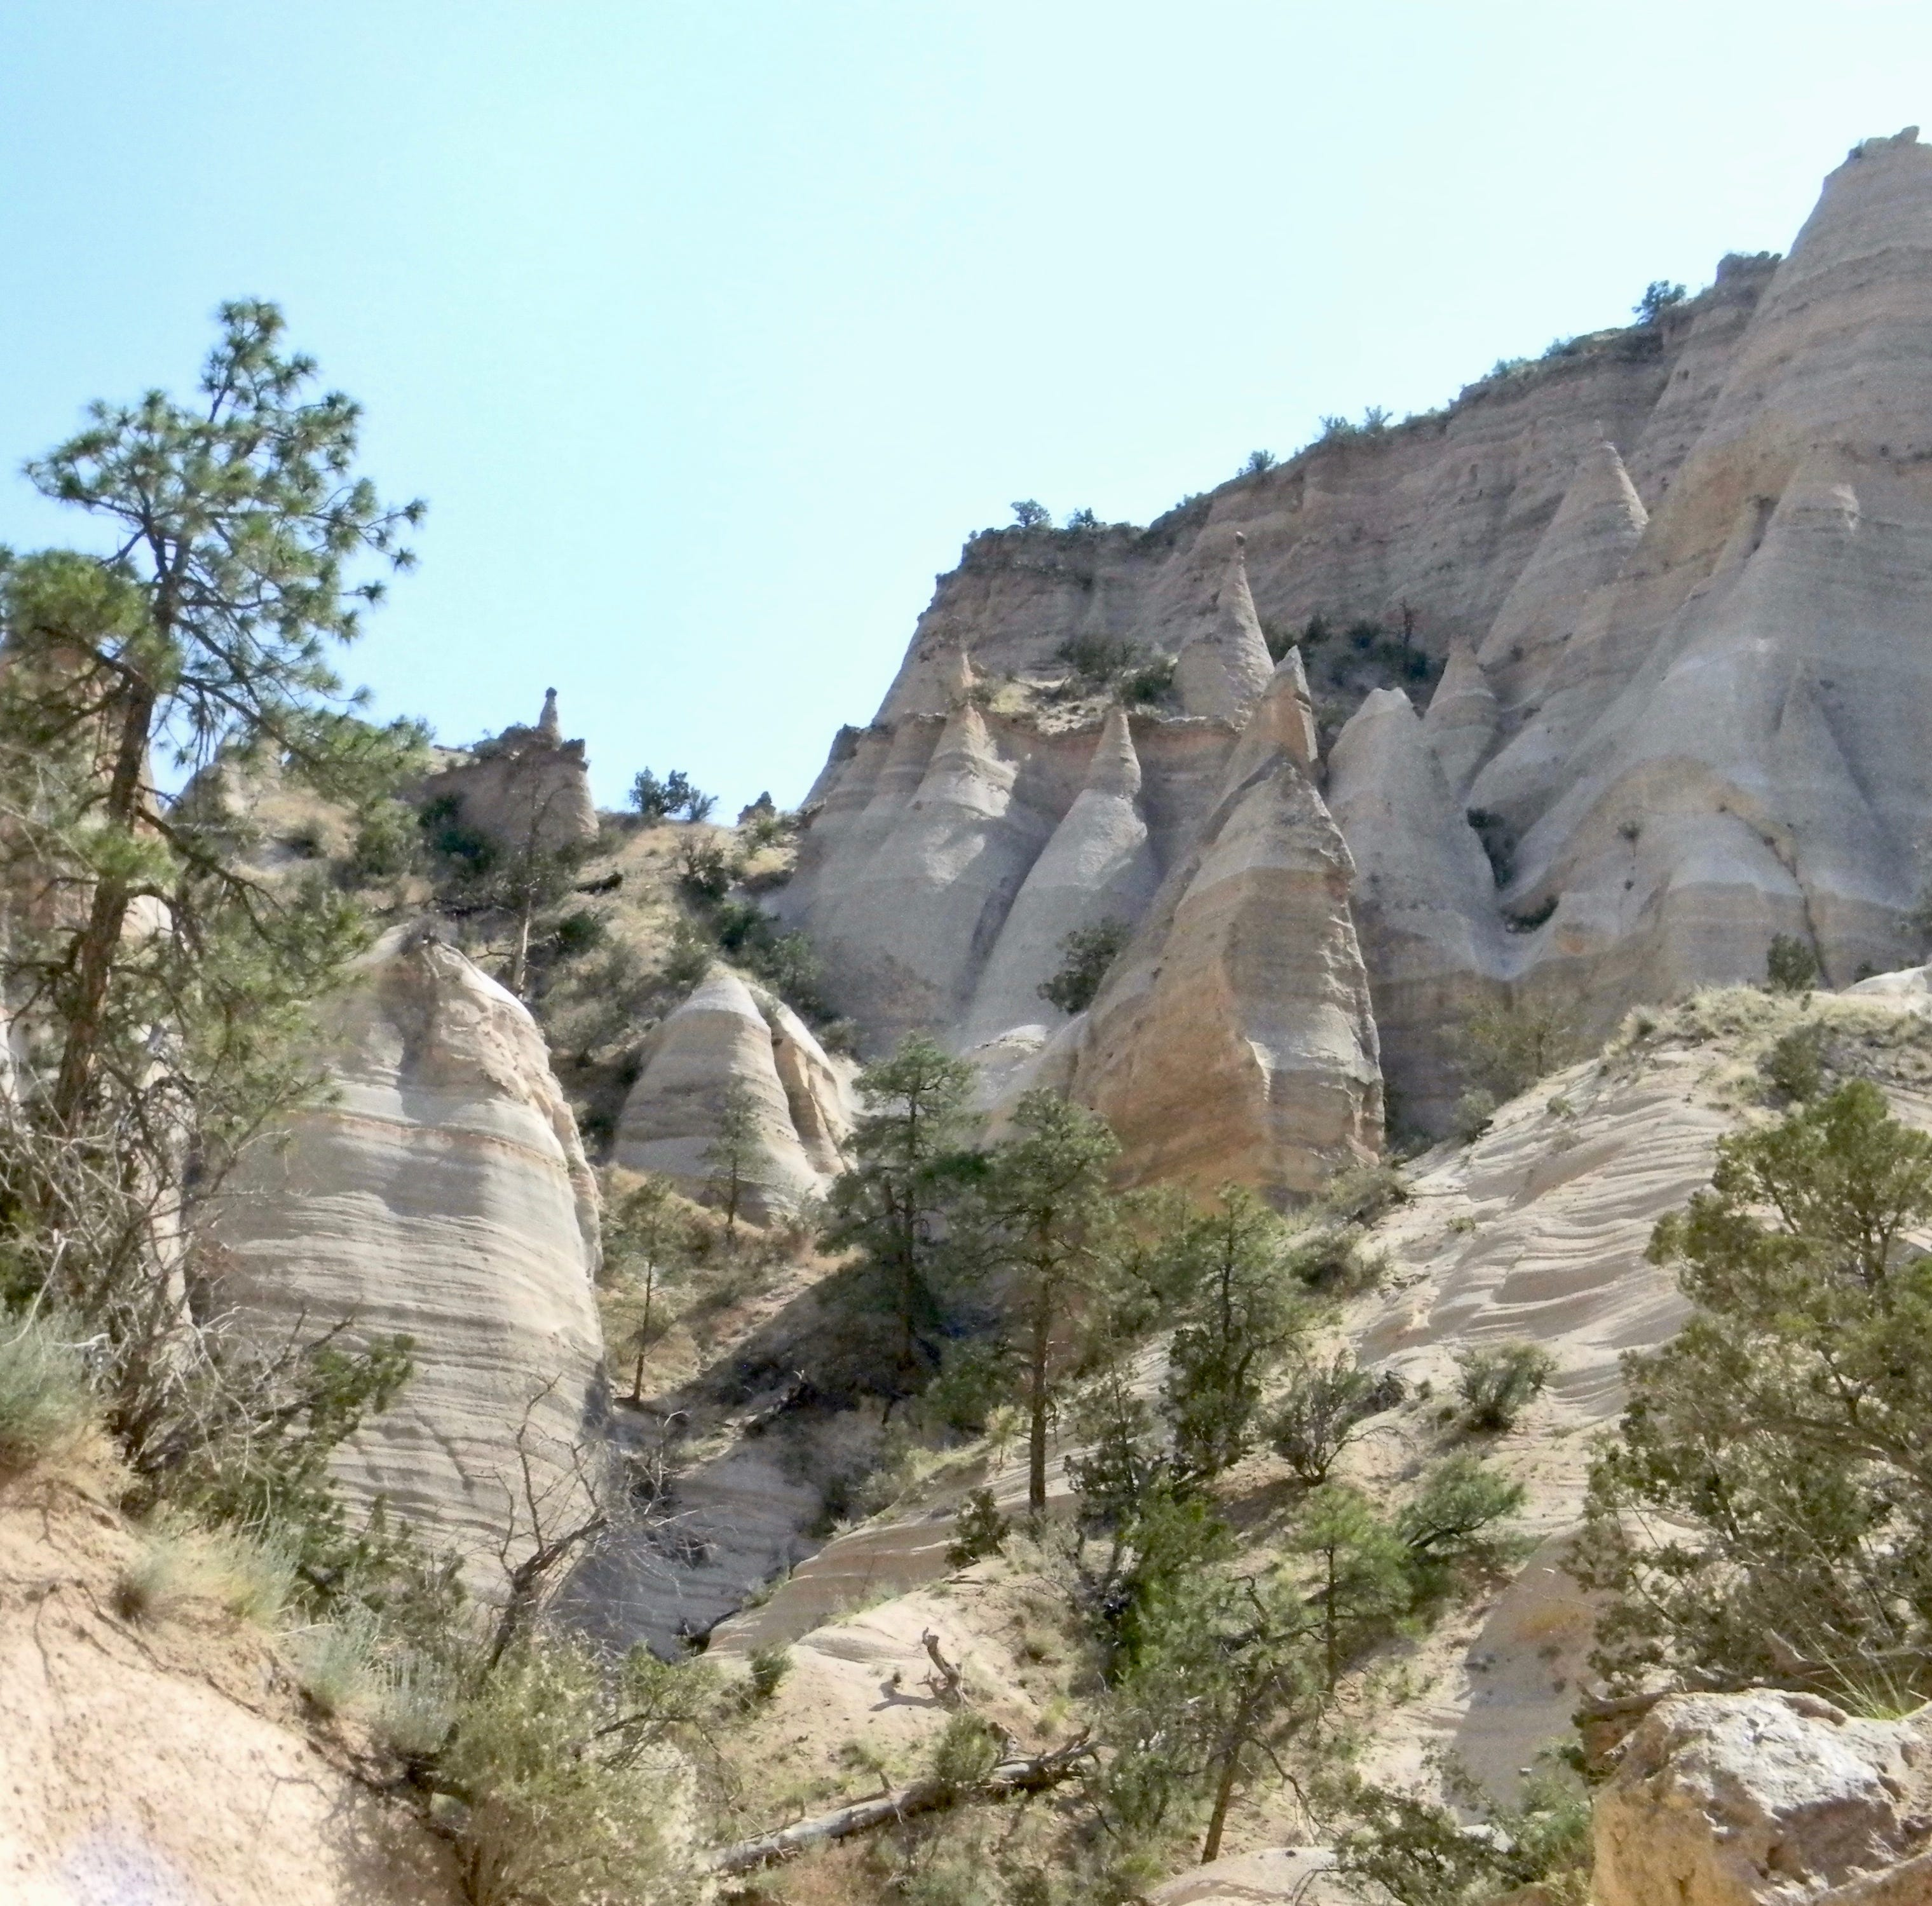 Kasha-Katuwe Tent Rocks a whimsy of nature